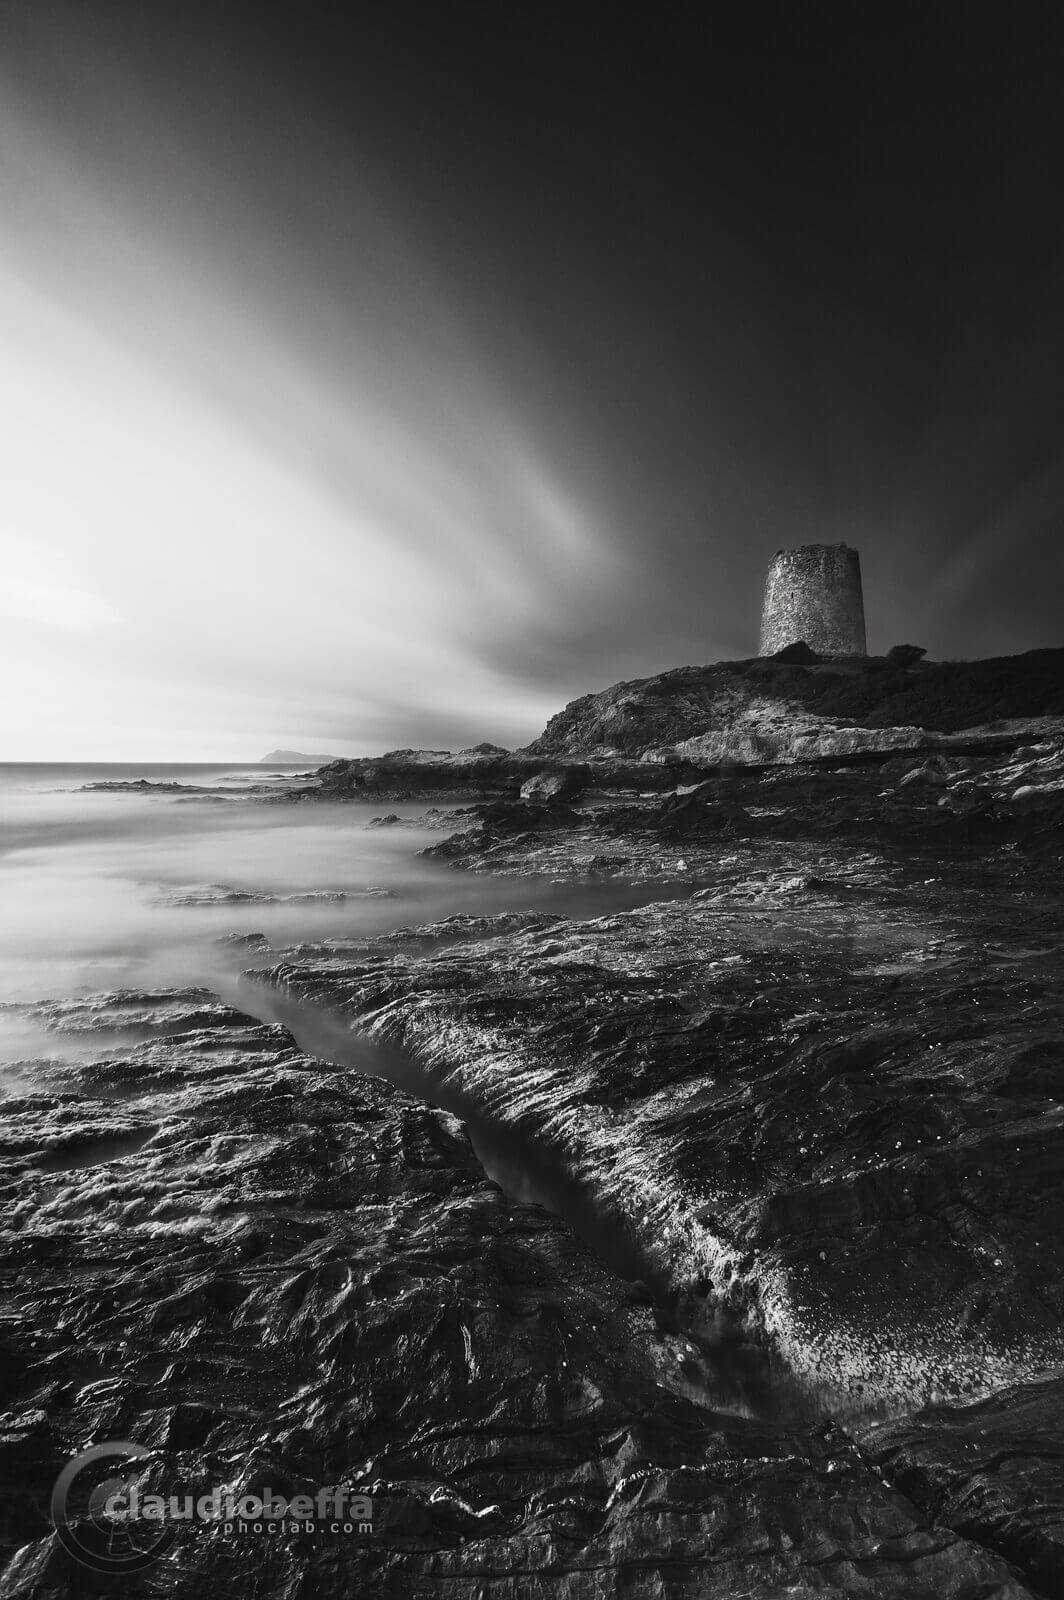 Fracture, landscape ,seascape, rocks, stones,tower, sea, sardinia, italy, long exposure, black and white